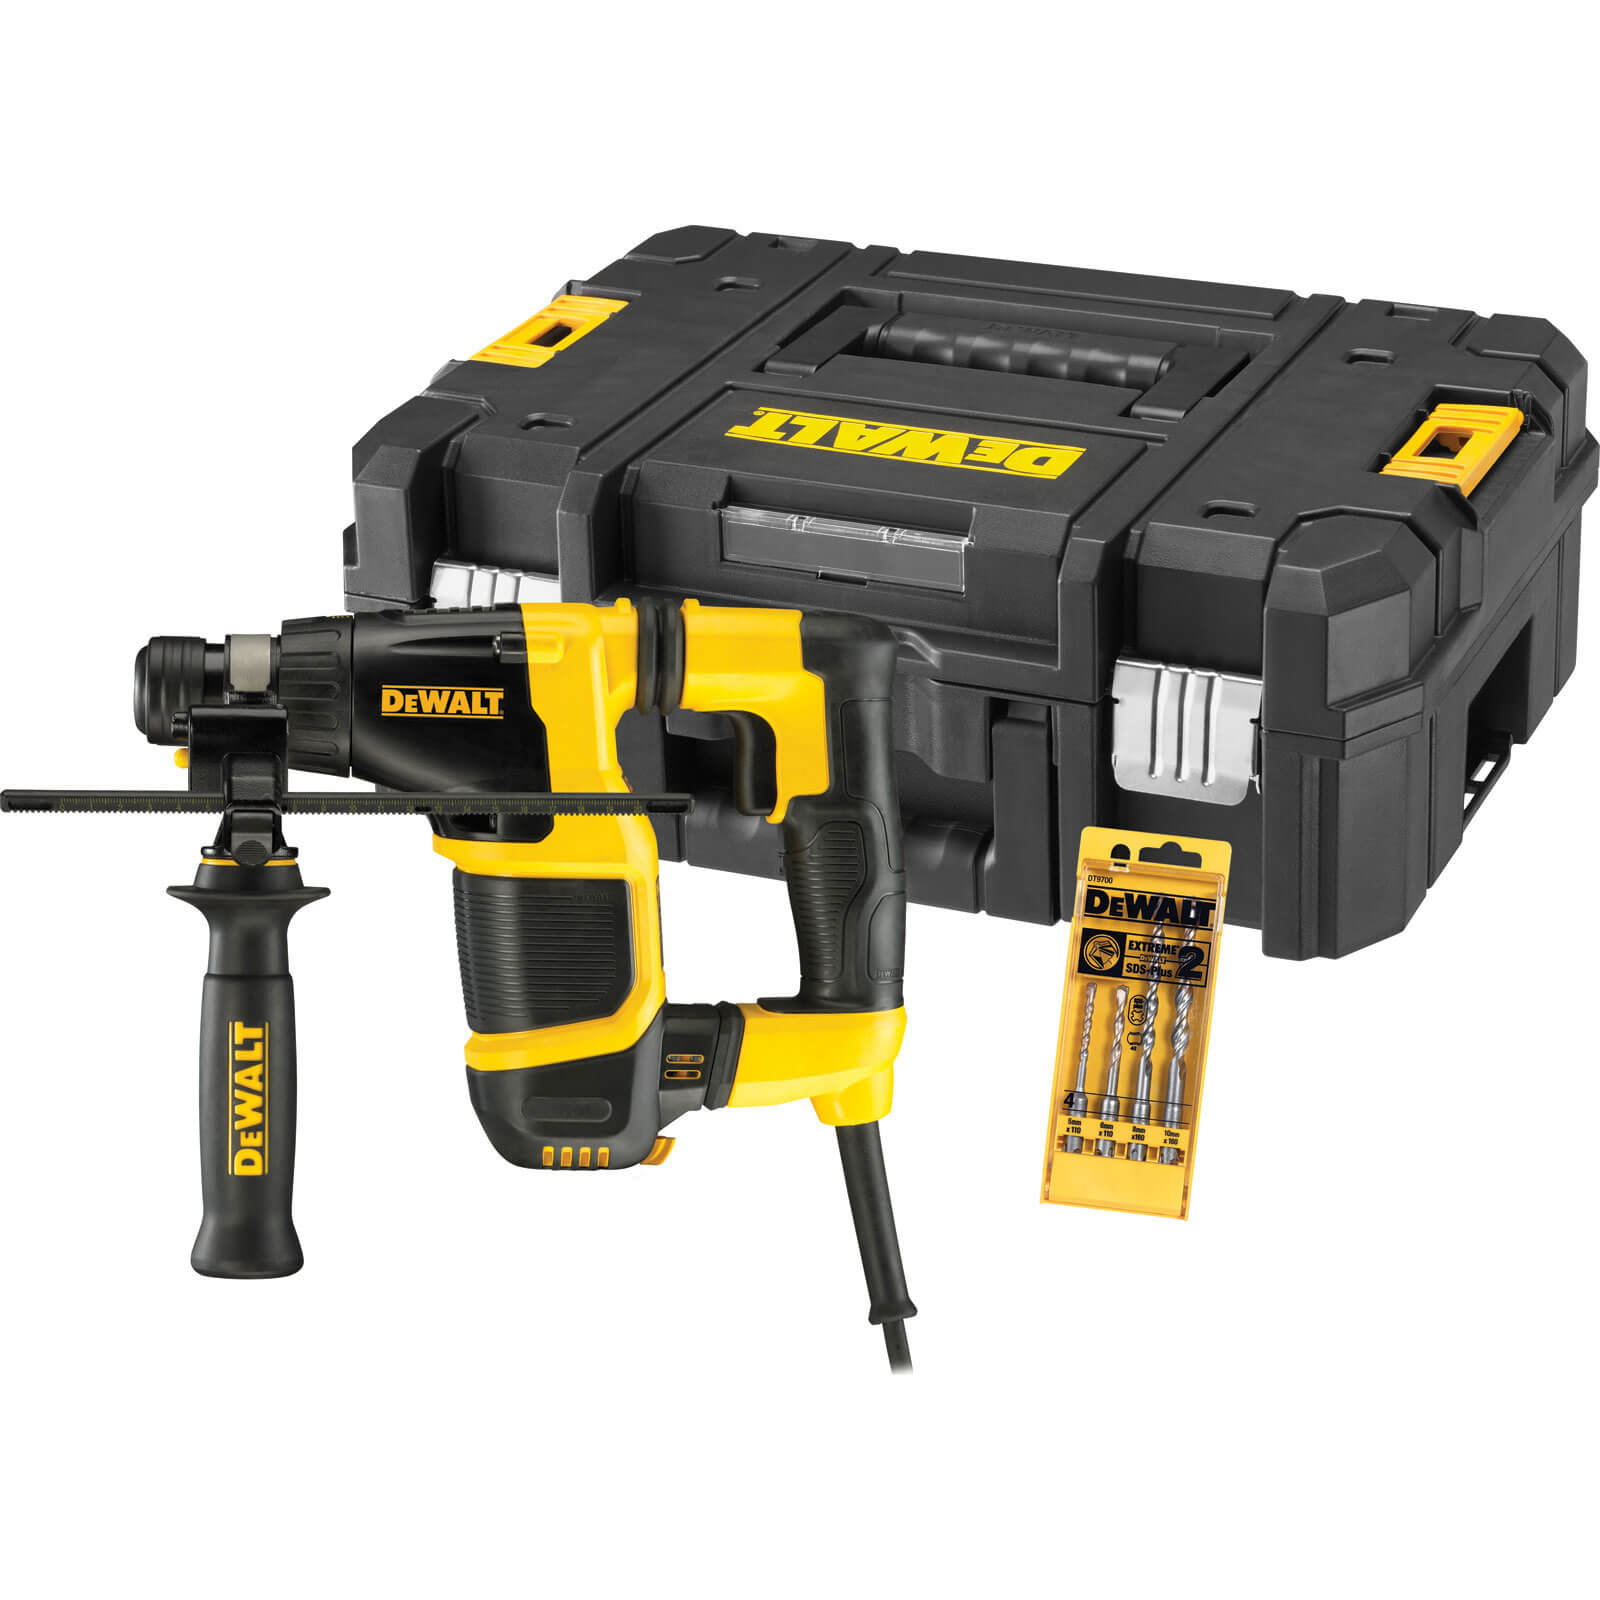 Image of DeWalt D25052KT SDS Plus Compact Hammer Drill with 20mm Chuck 650w 240v